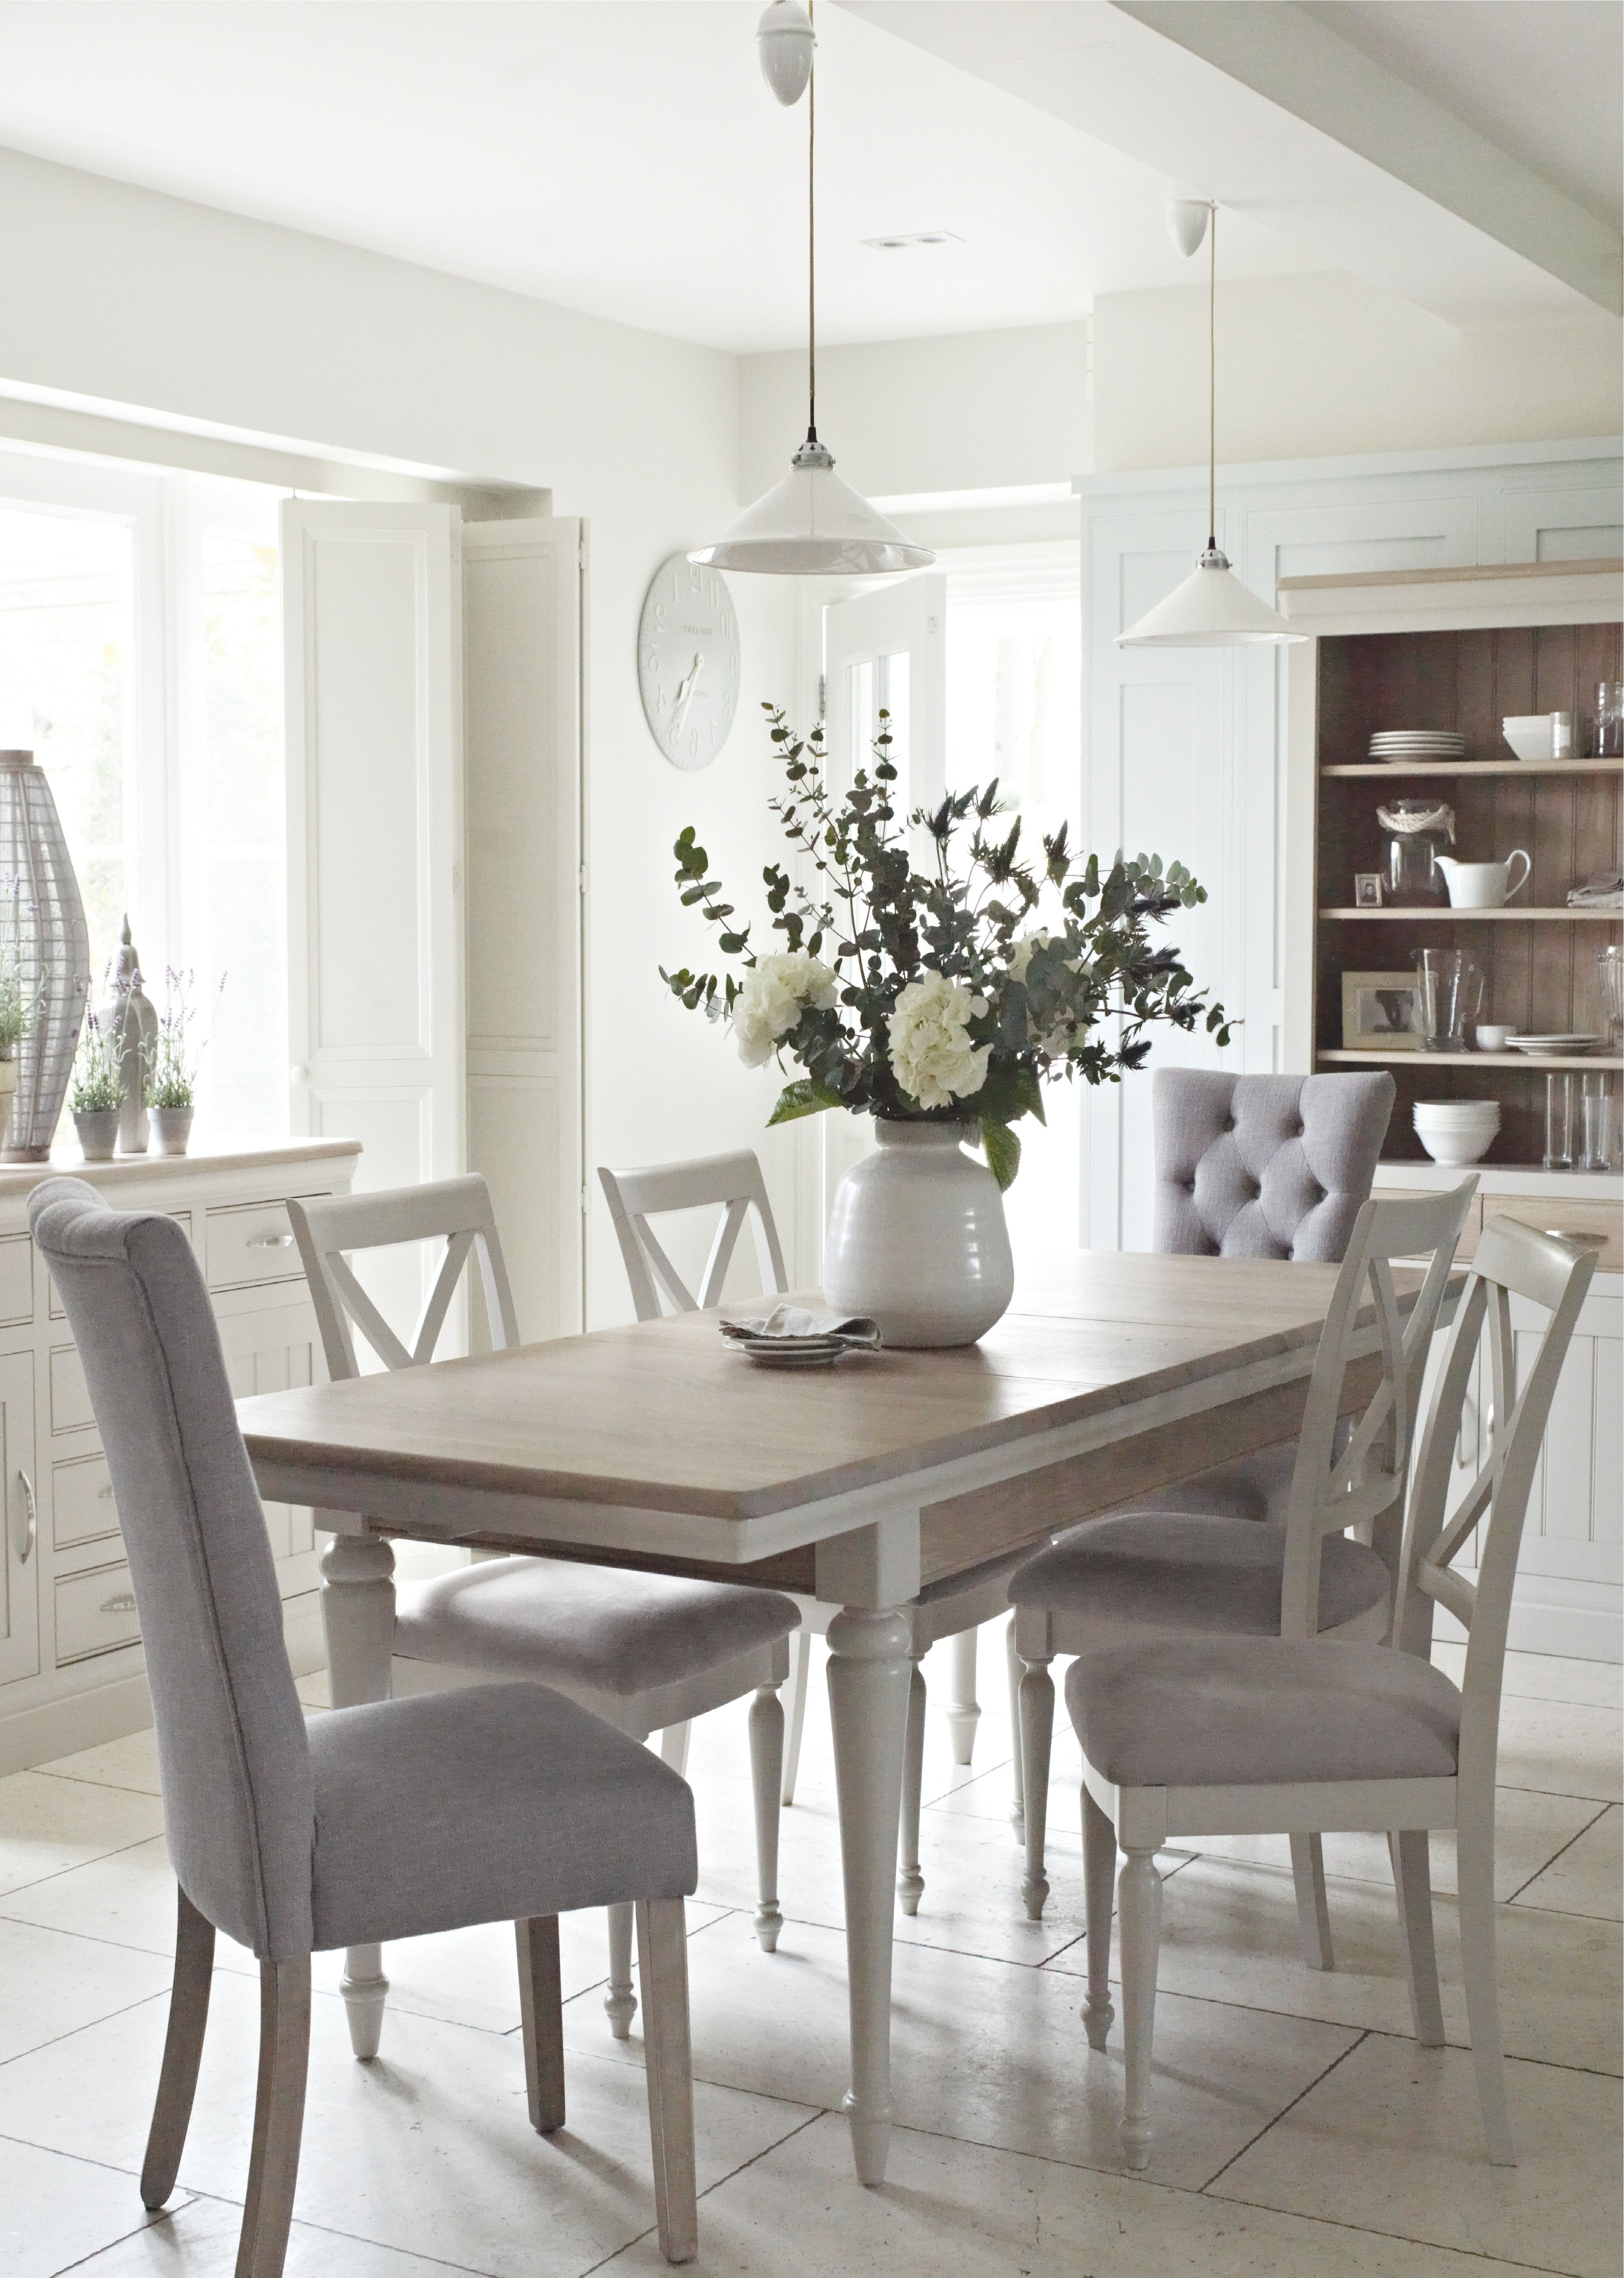 Recent White Dining Tables And Chairs In The Classic Bambury Dining Range Just Oozes Country Chic (View 22 of 25)